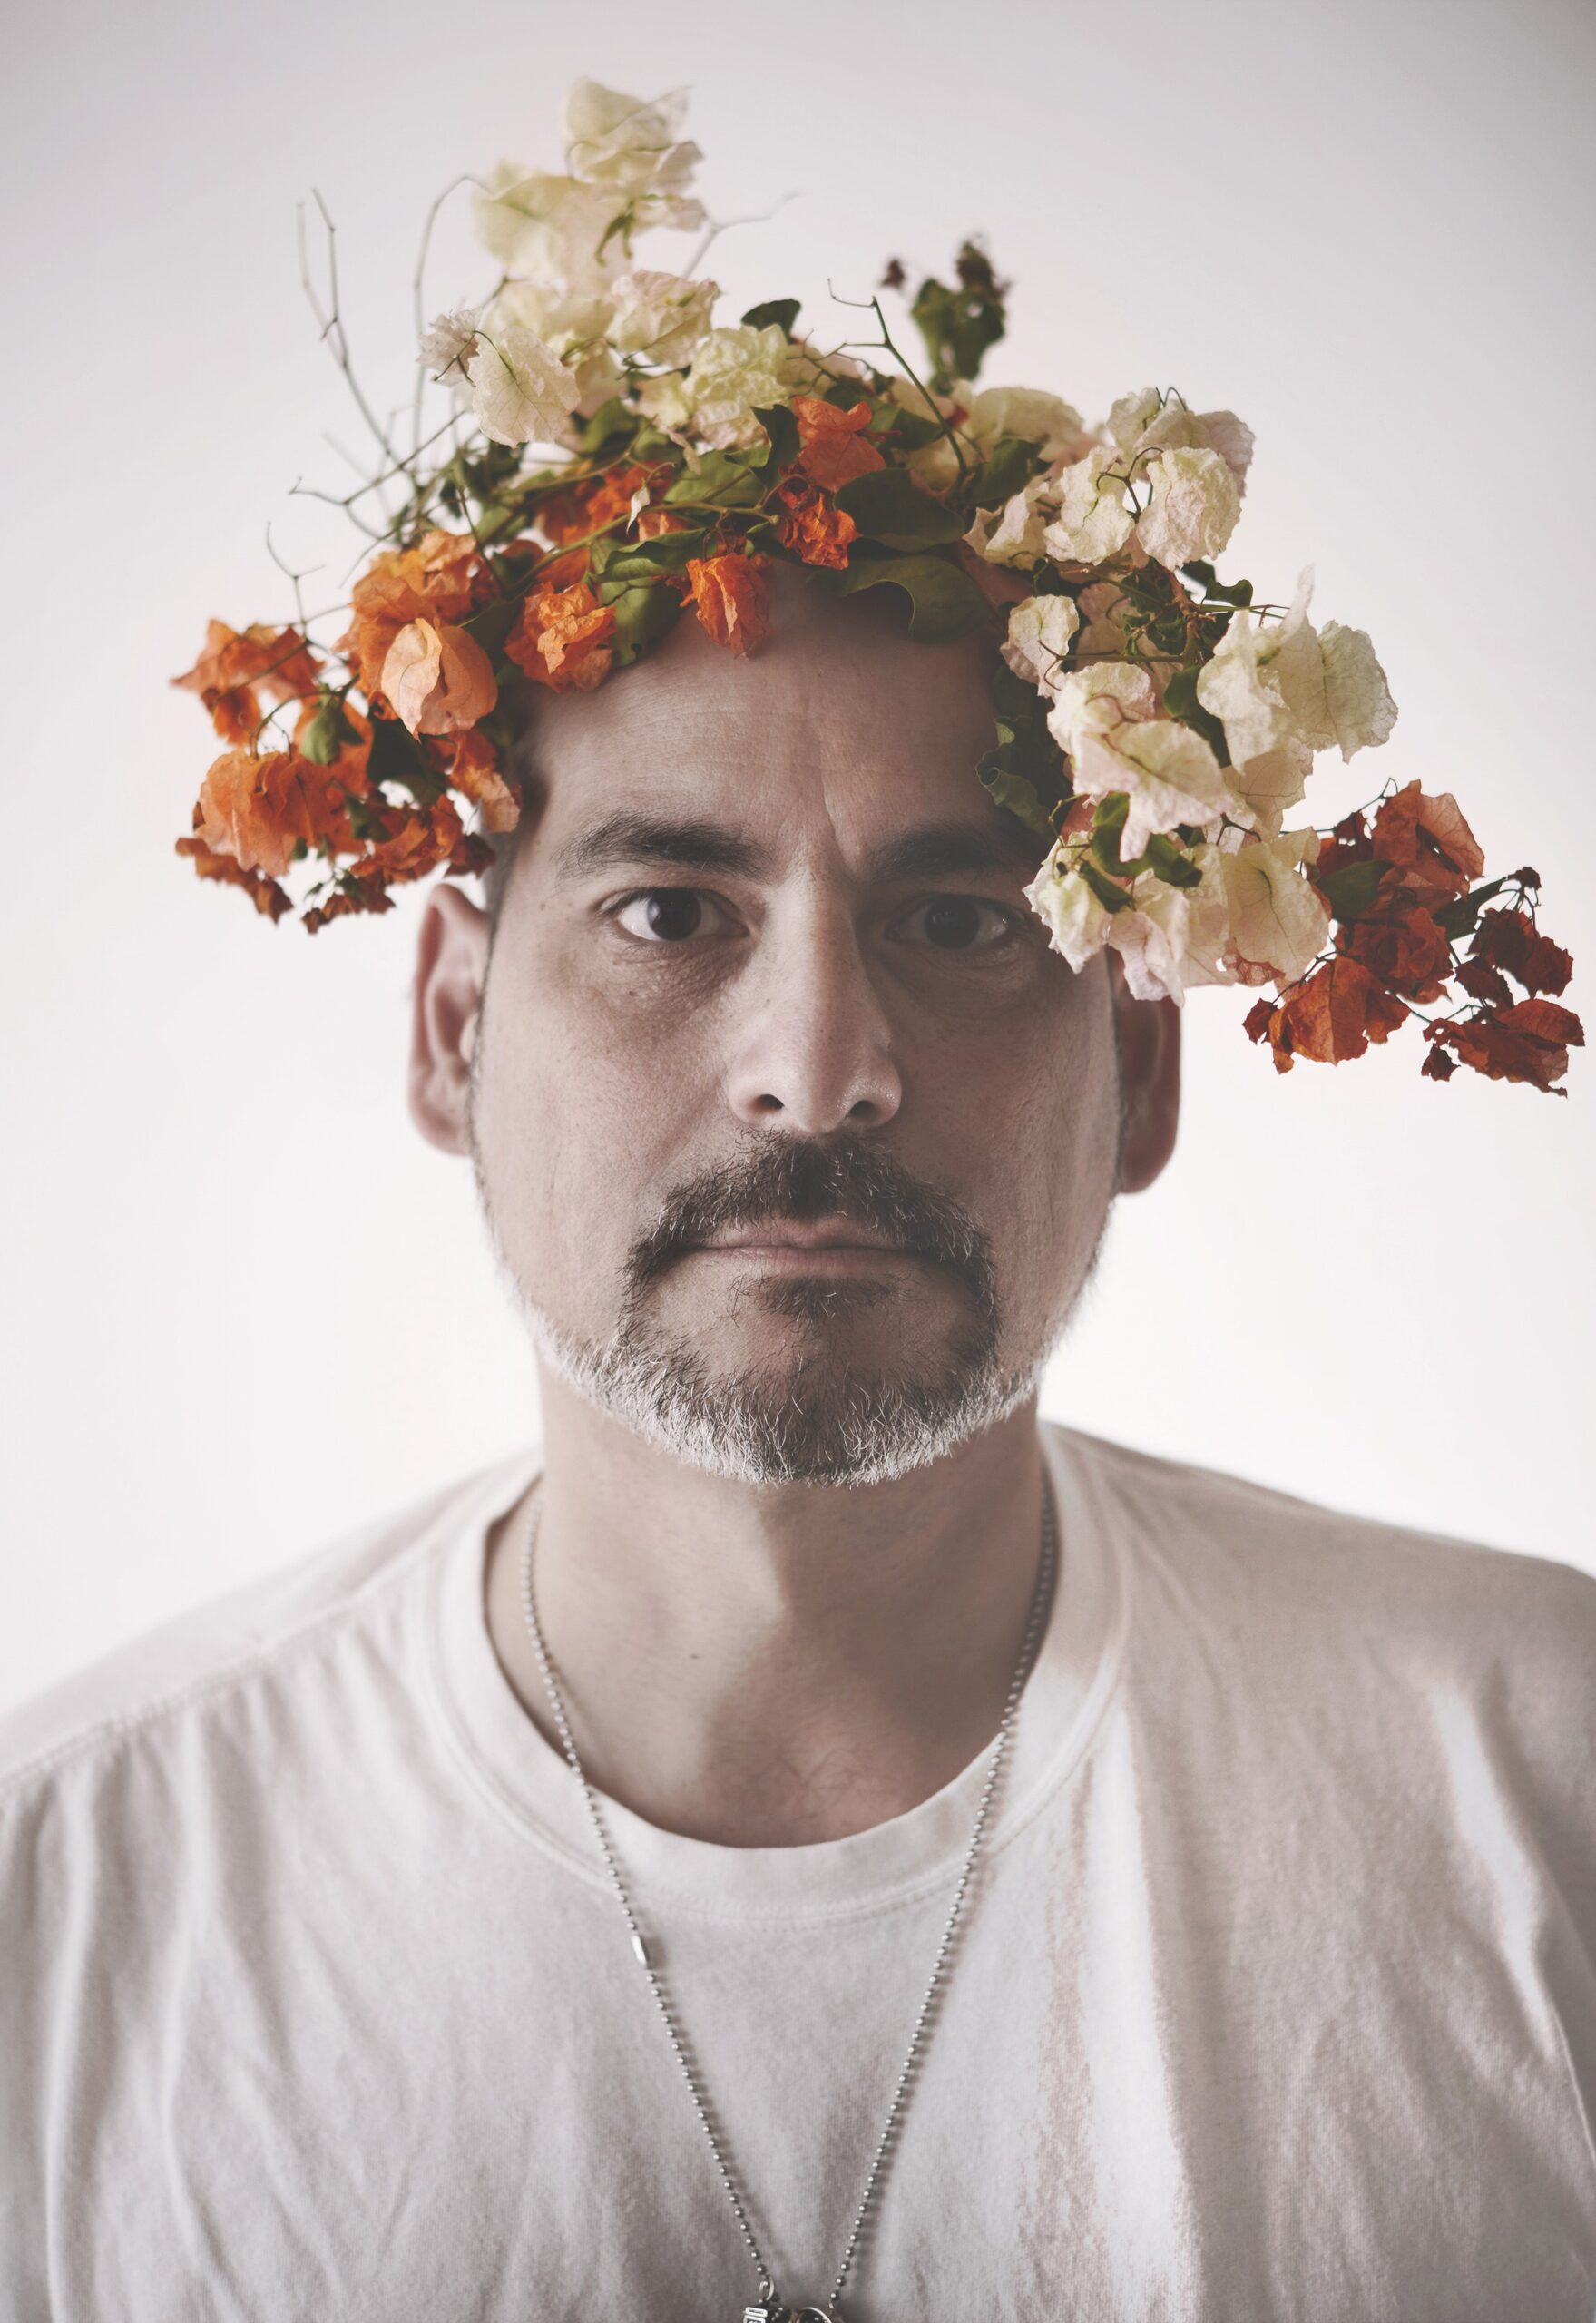 Headshot of Franklin Vagnone, wearing a flower crown